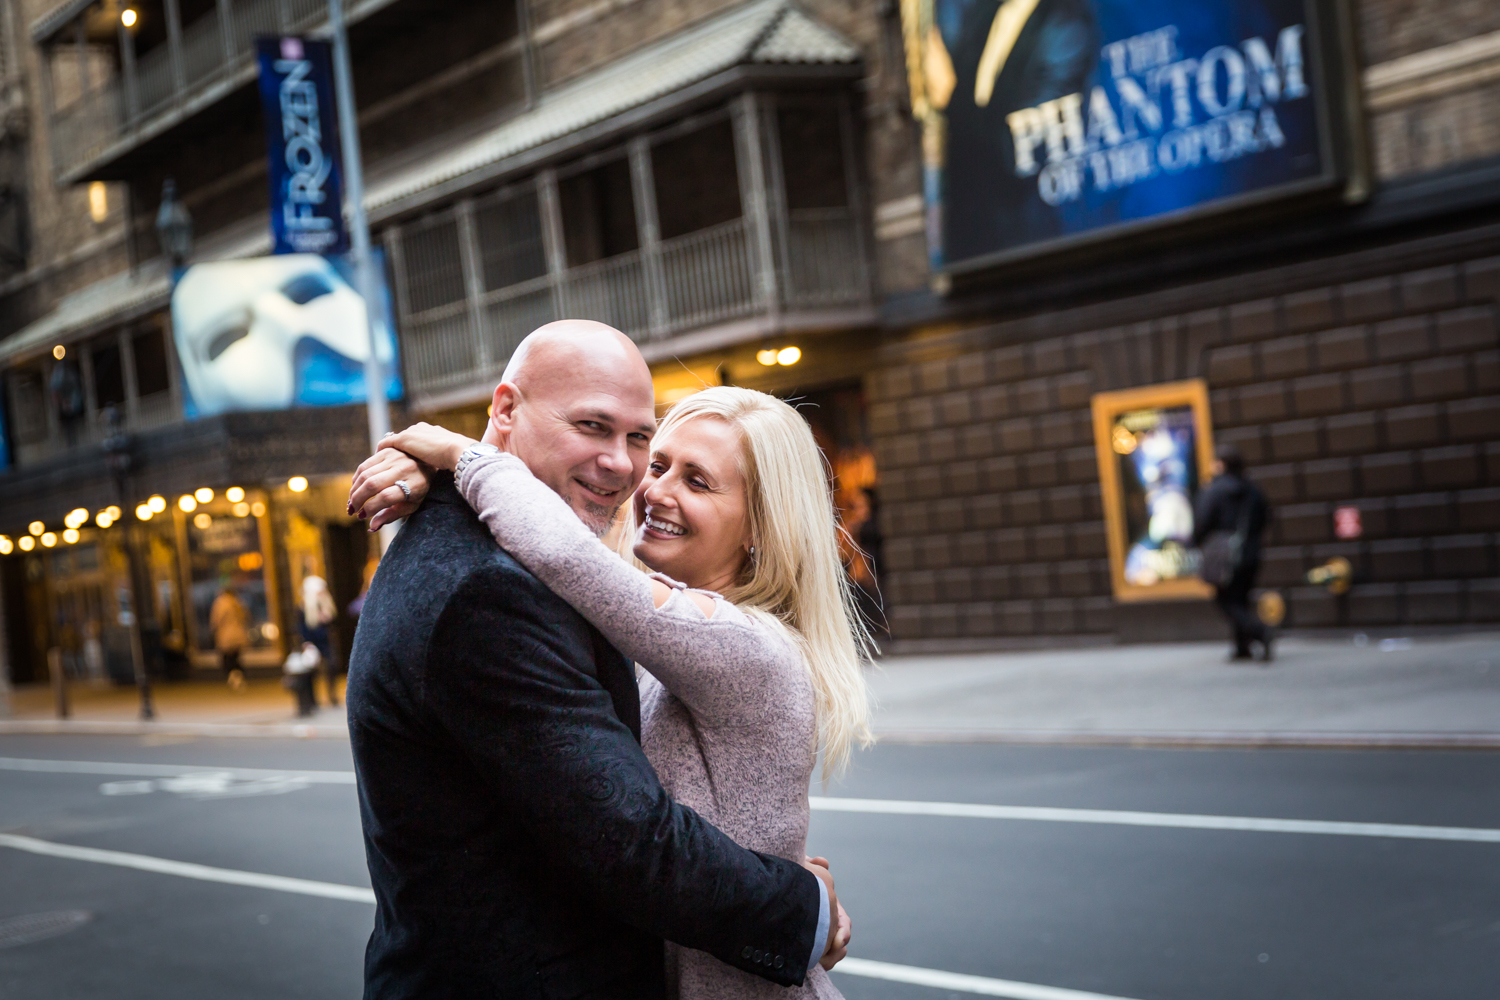 Couple hugging in front of Broadway theater for an article on how to propose on top of the Empire State Building